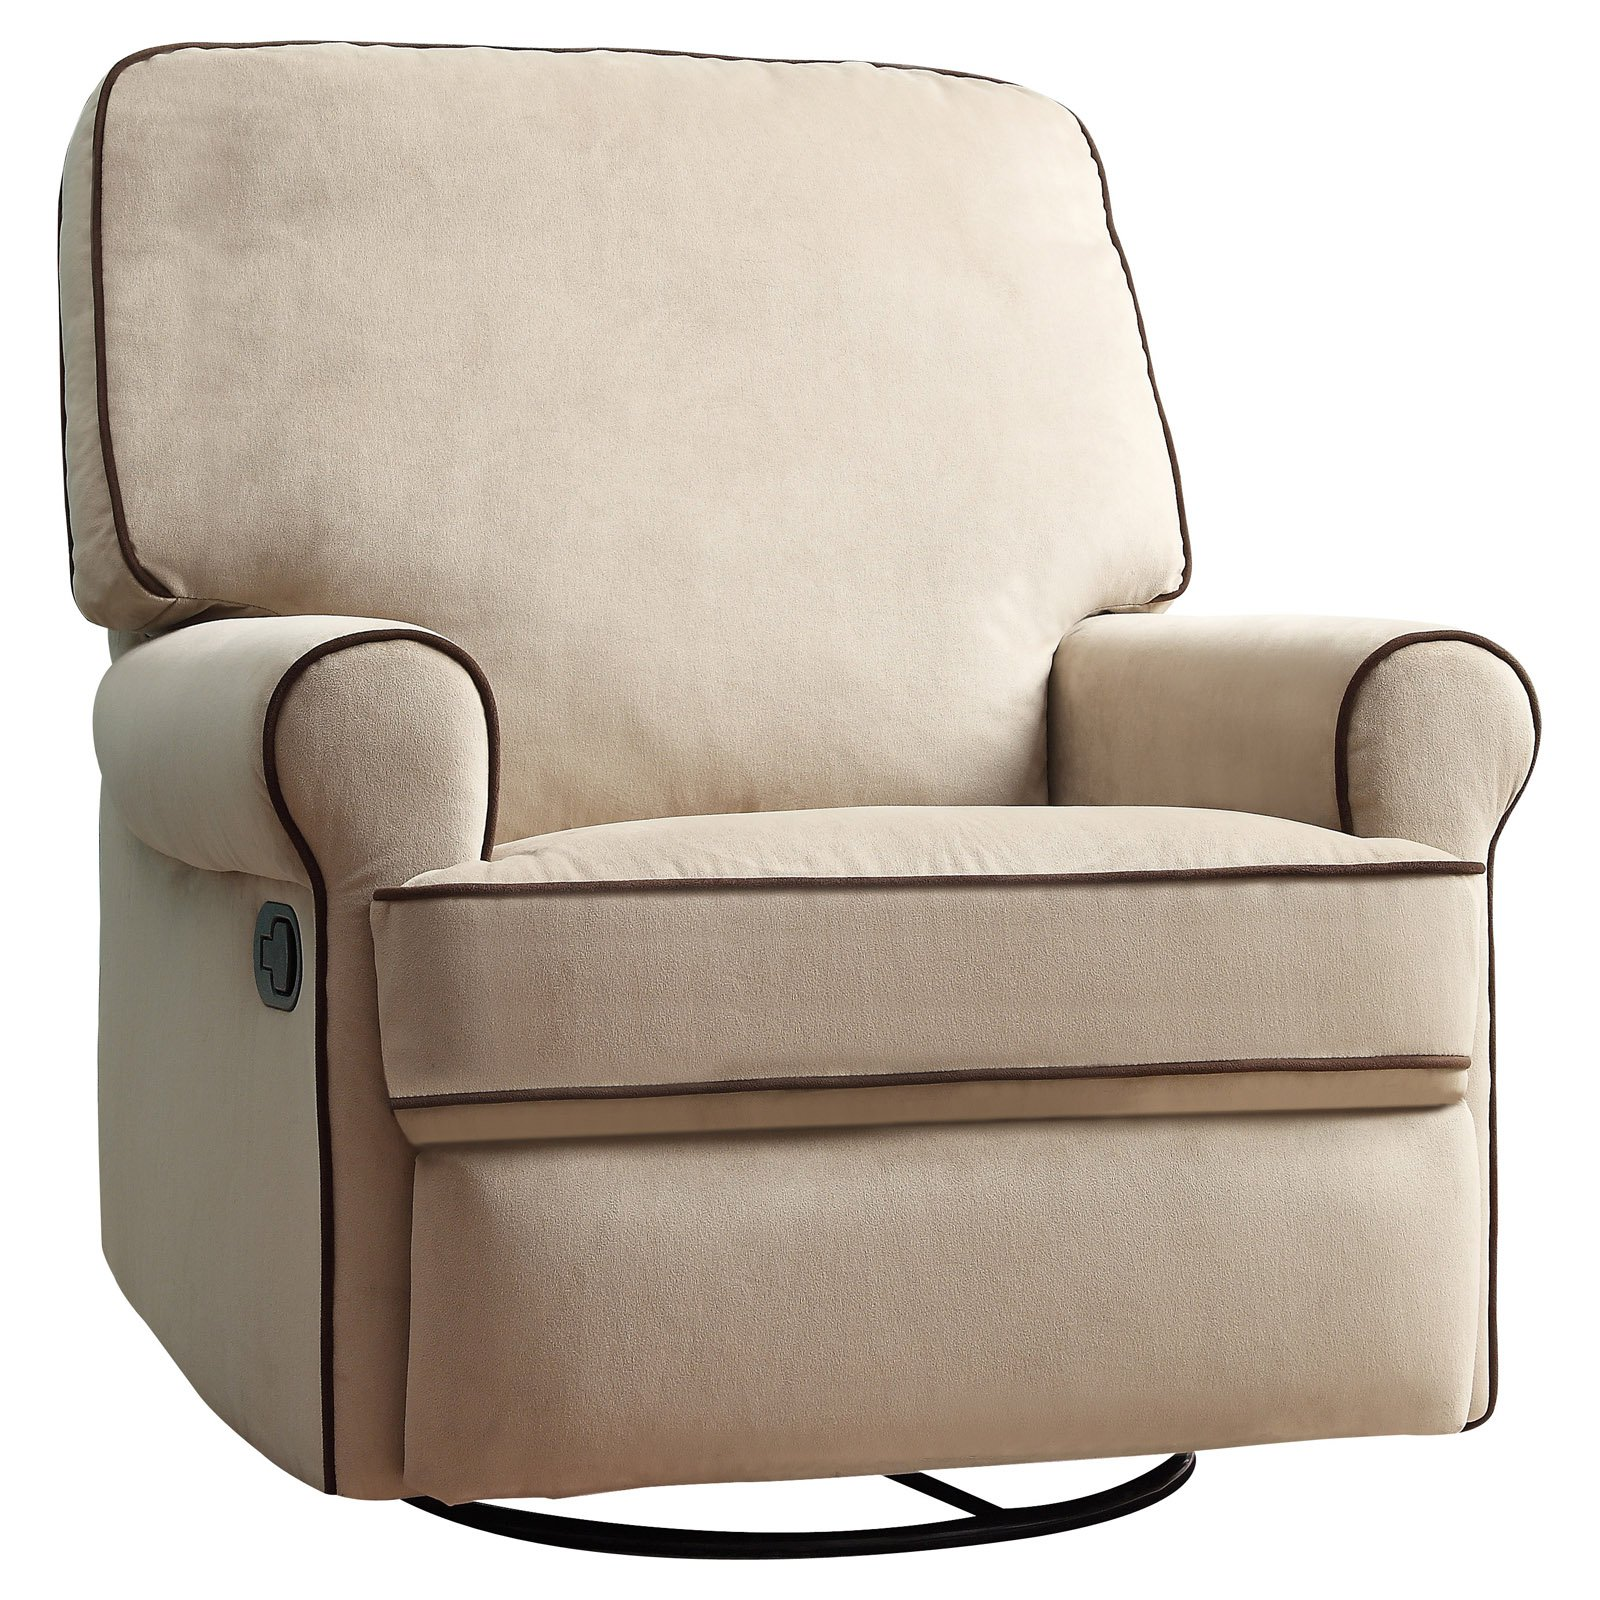 Home Meridian International Birch Hill Swivel Glider Recliner Beige with Stella Contrast Piping